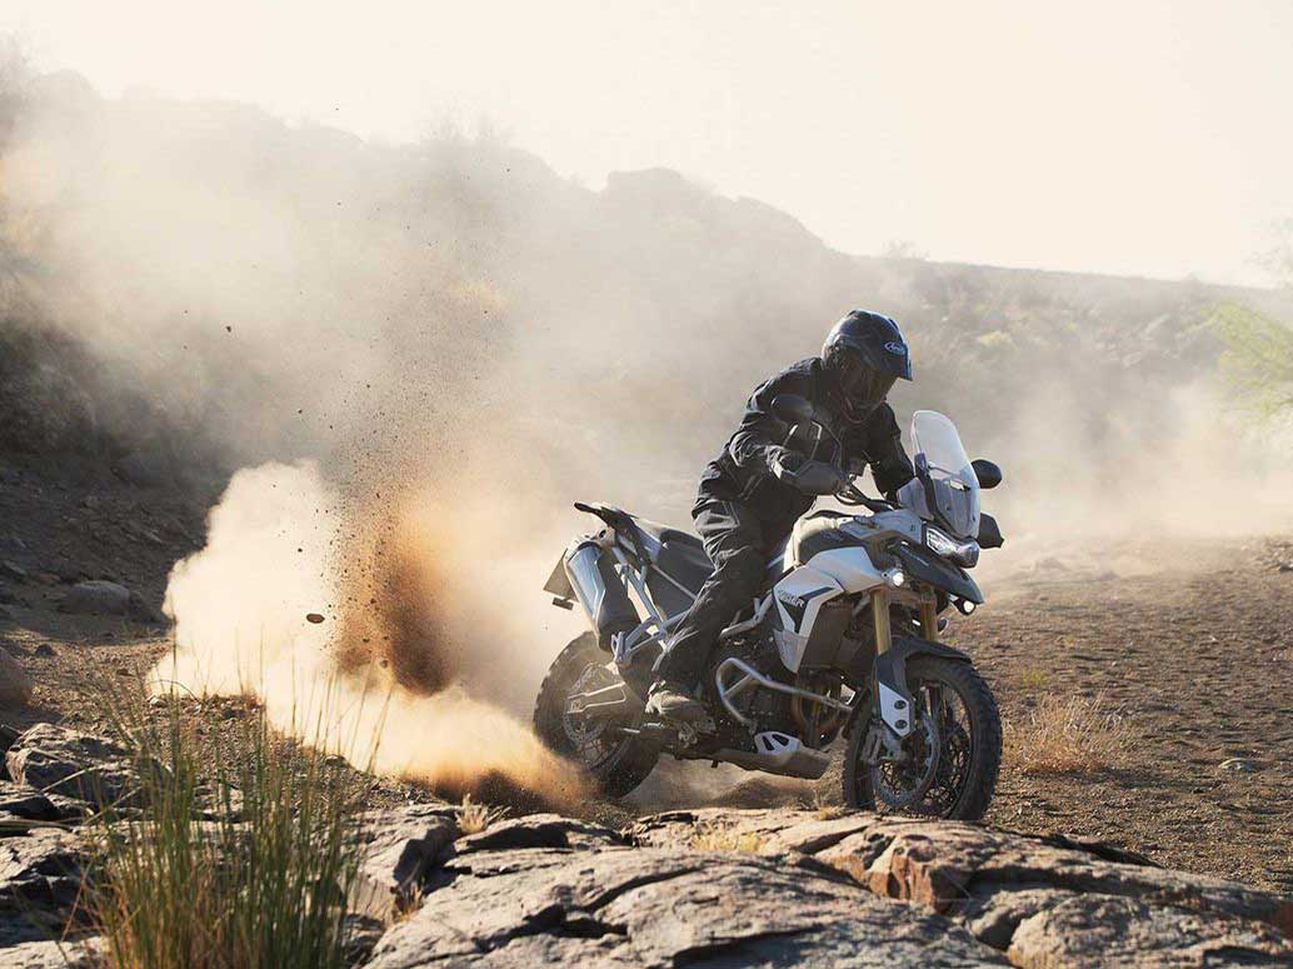 The Triumph Tiger 900 is likely to be an even better version of an already well-appointed motorcycle.